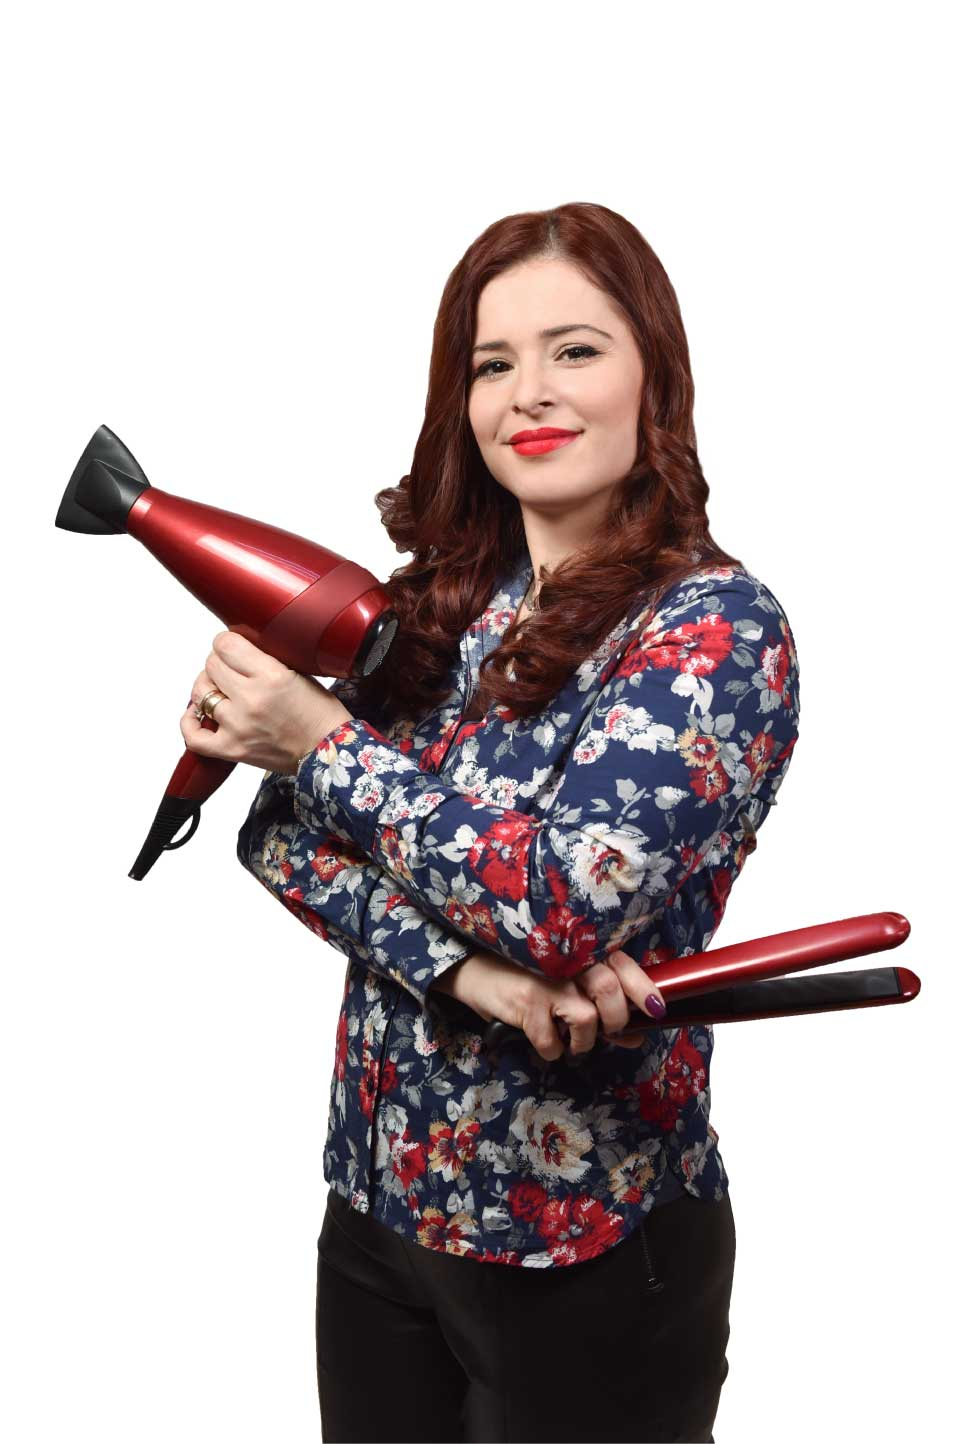 1GHITA-ANGELA---SENIOR-HAIRSTYLIST